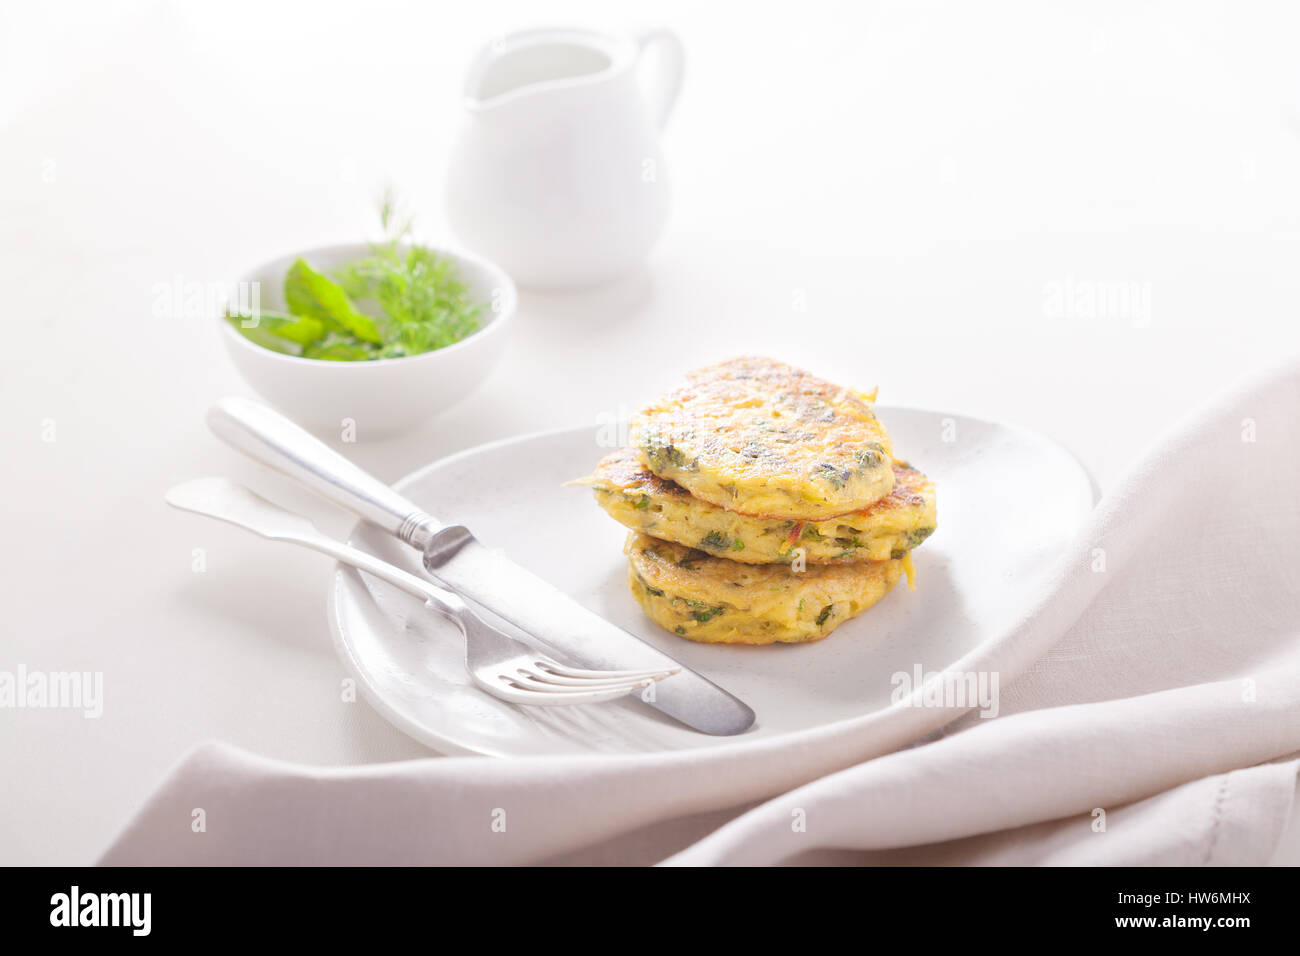 Healthy Zucchini fritters - Stock Image